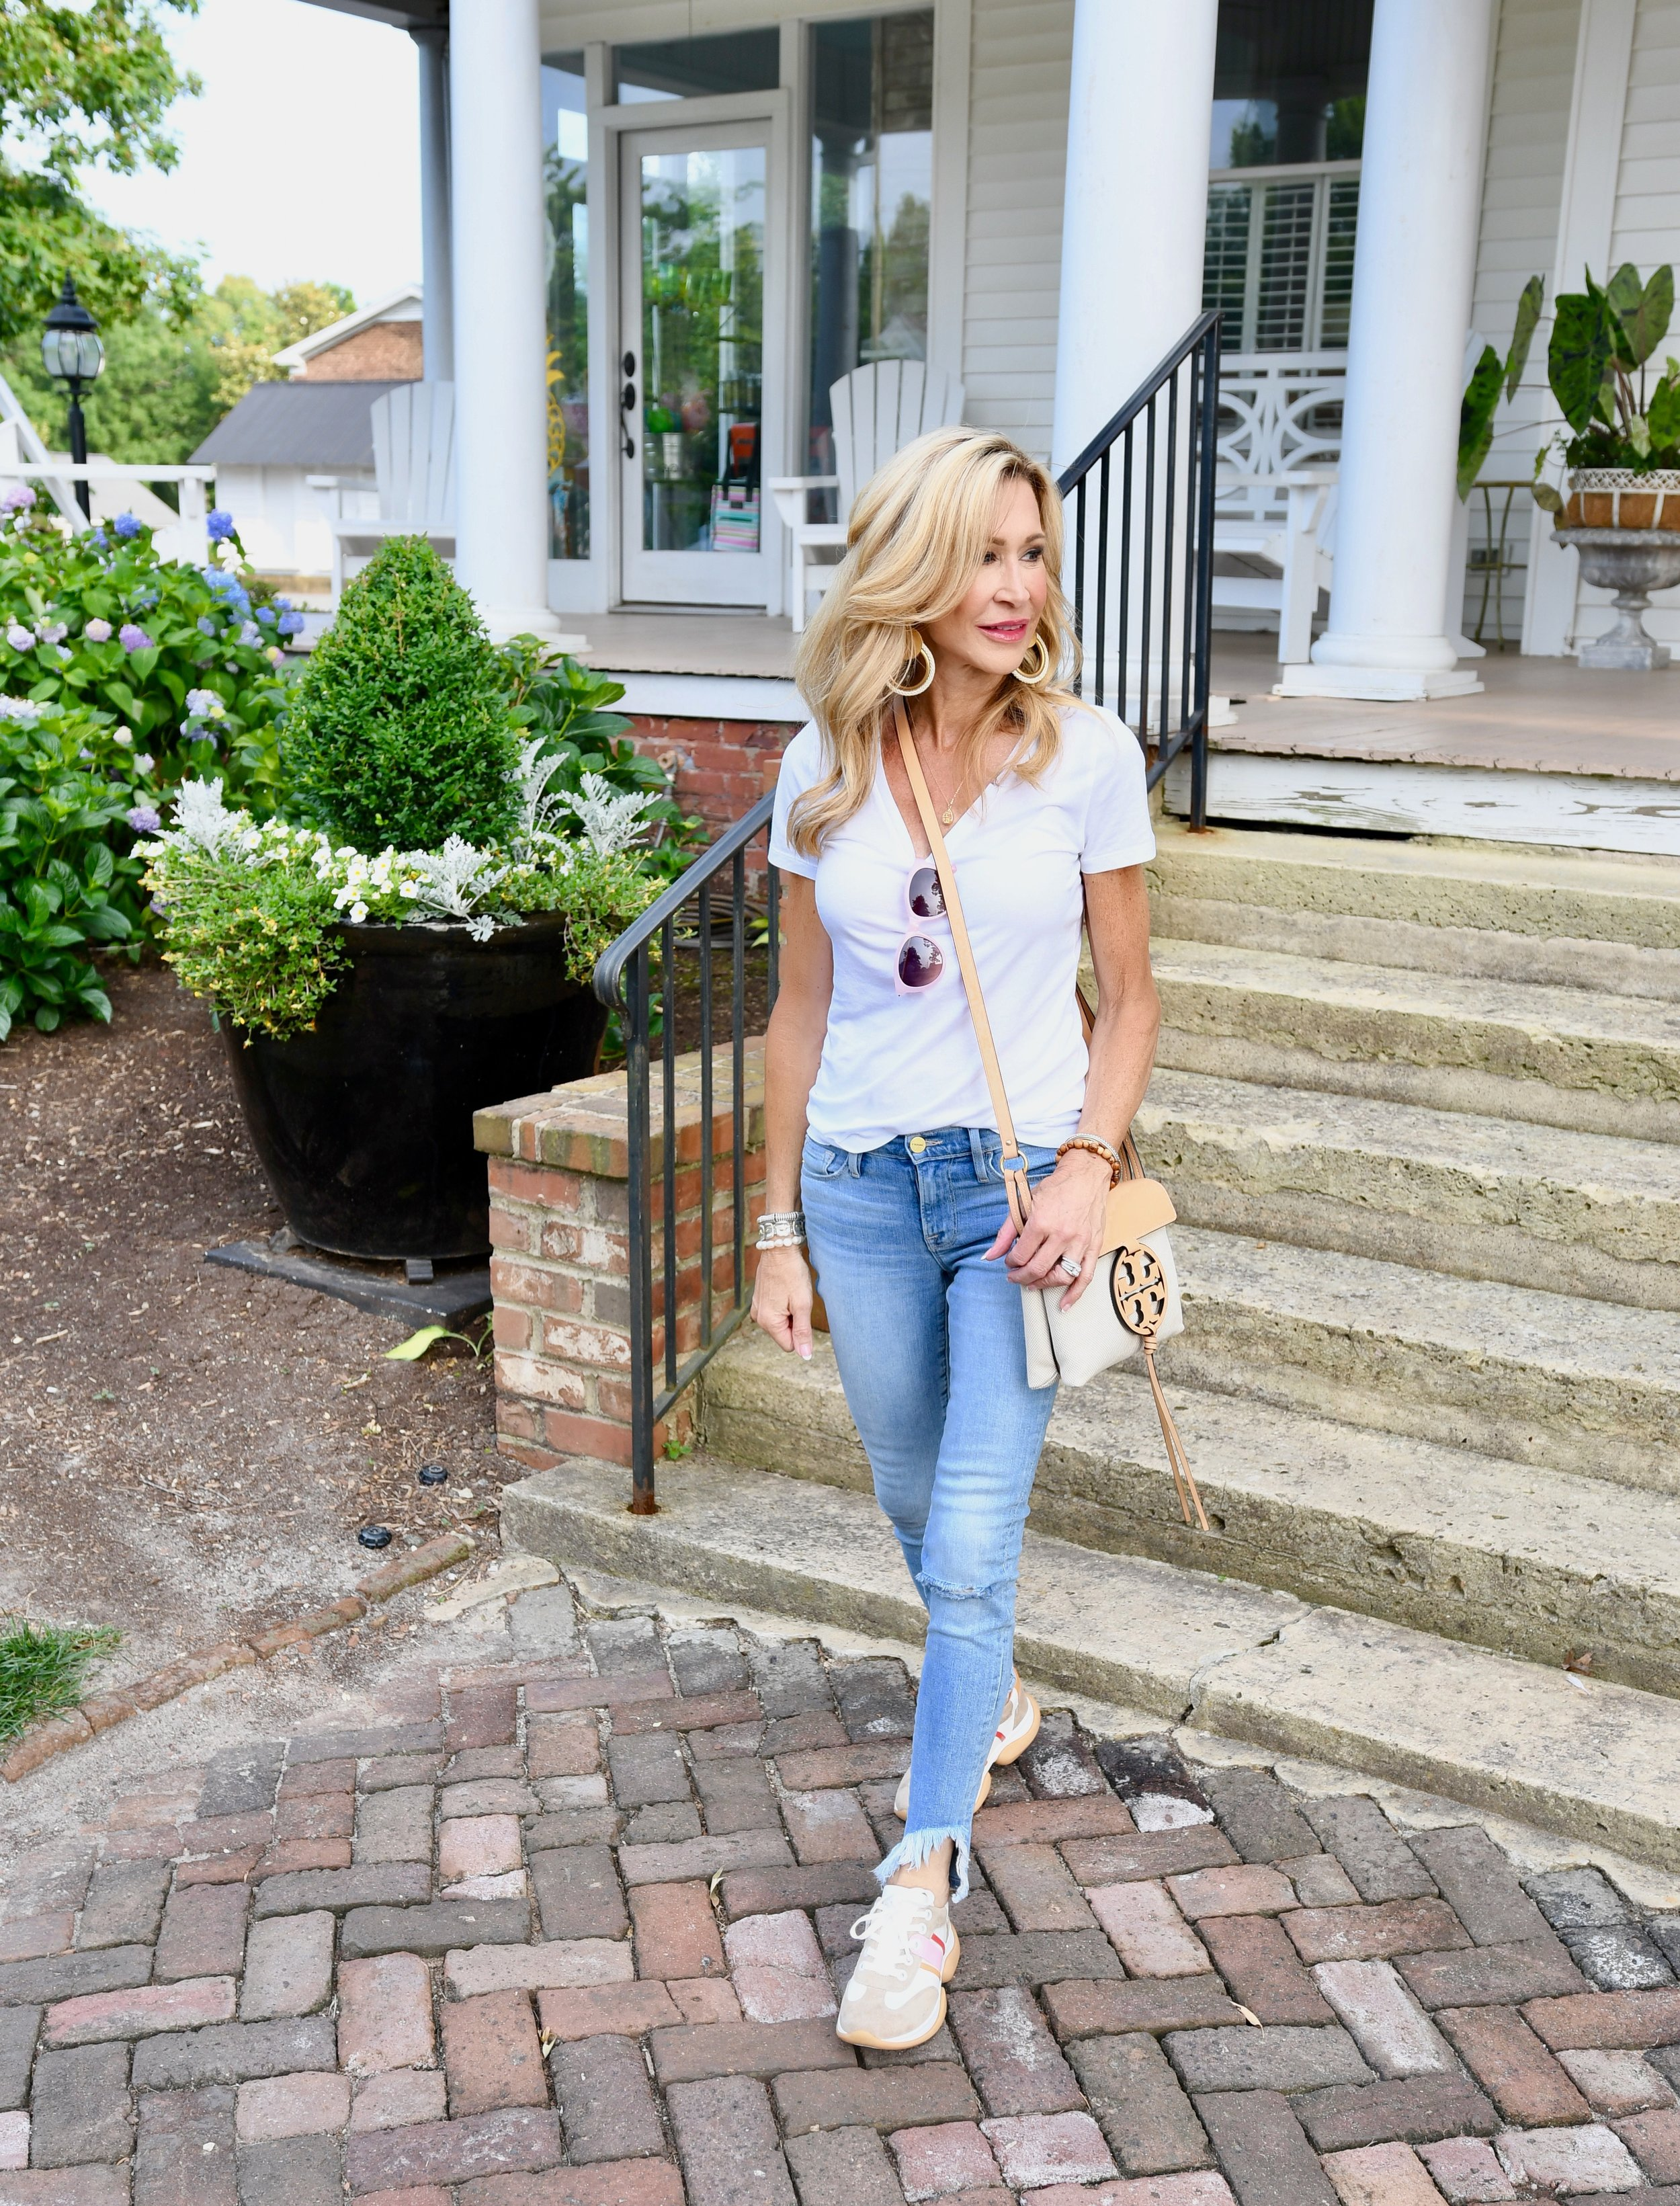 Casual Spring Outfit - Tory Burch bubble sneakers, Frame Denim jeans, white tee and Tory Burch Bag